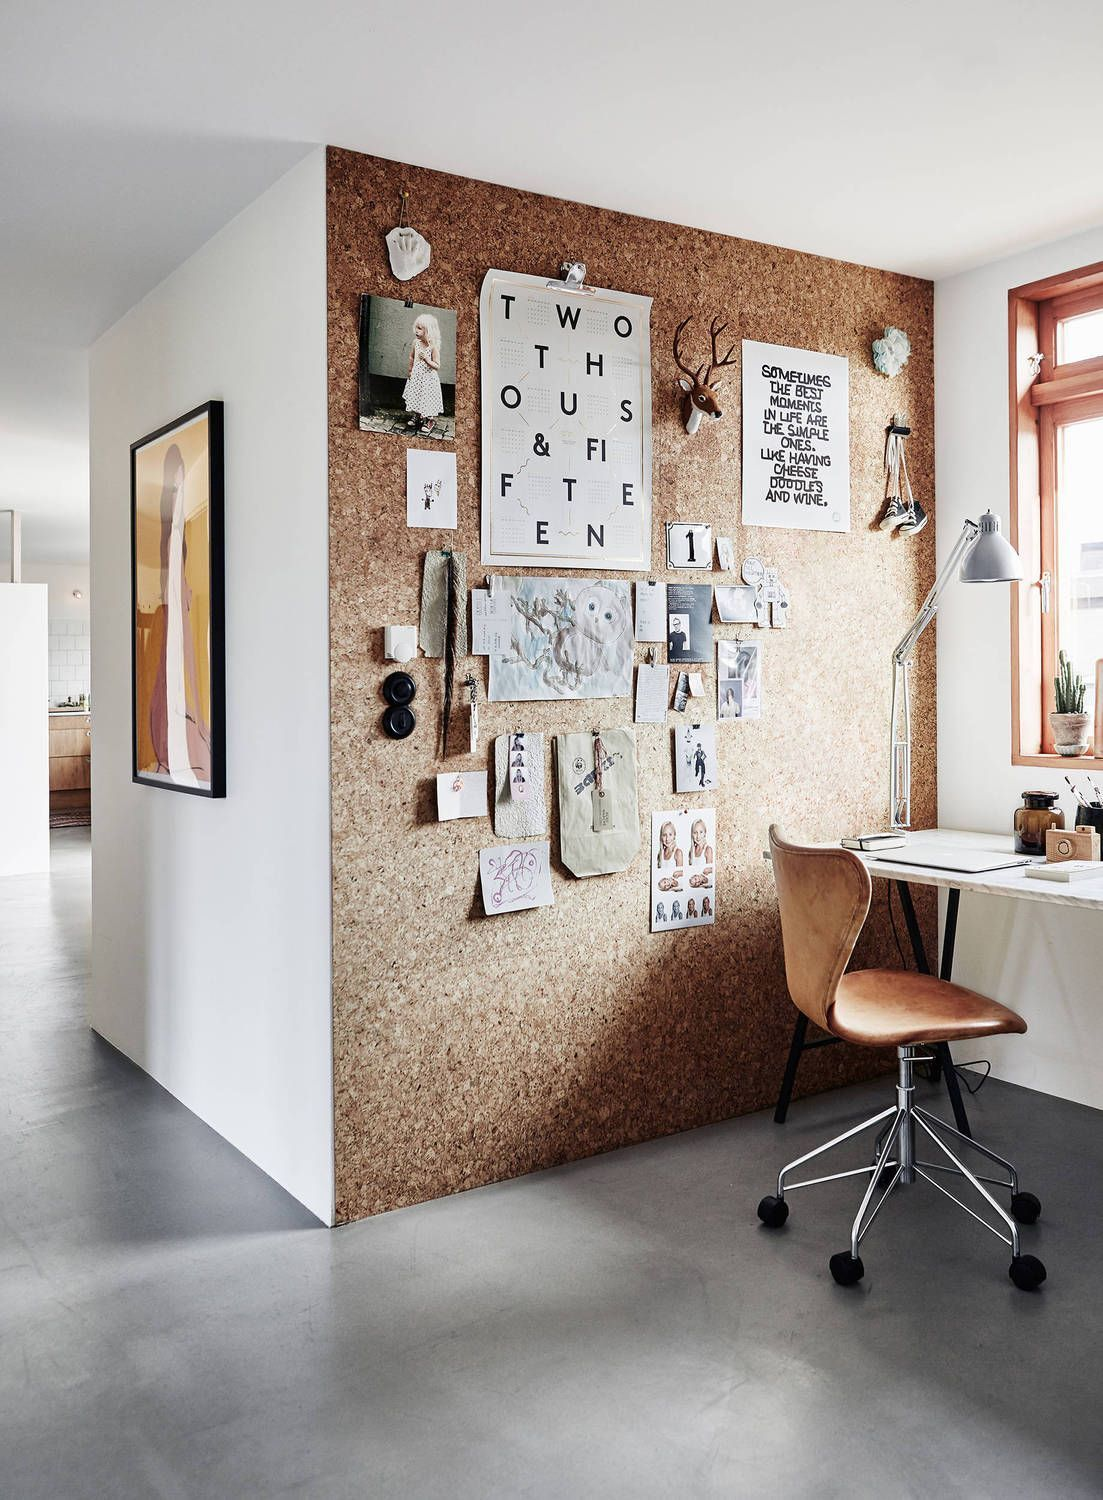 Design Cork Board Wall top 10 ideias simples que vao mudar seu home office cork wall inspiration creative work space pin board wall